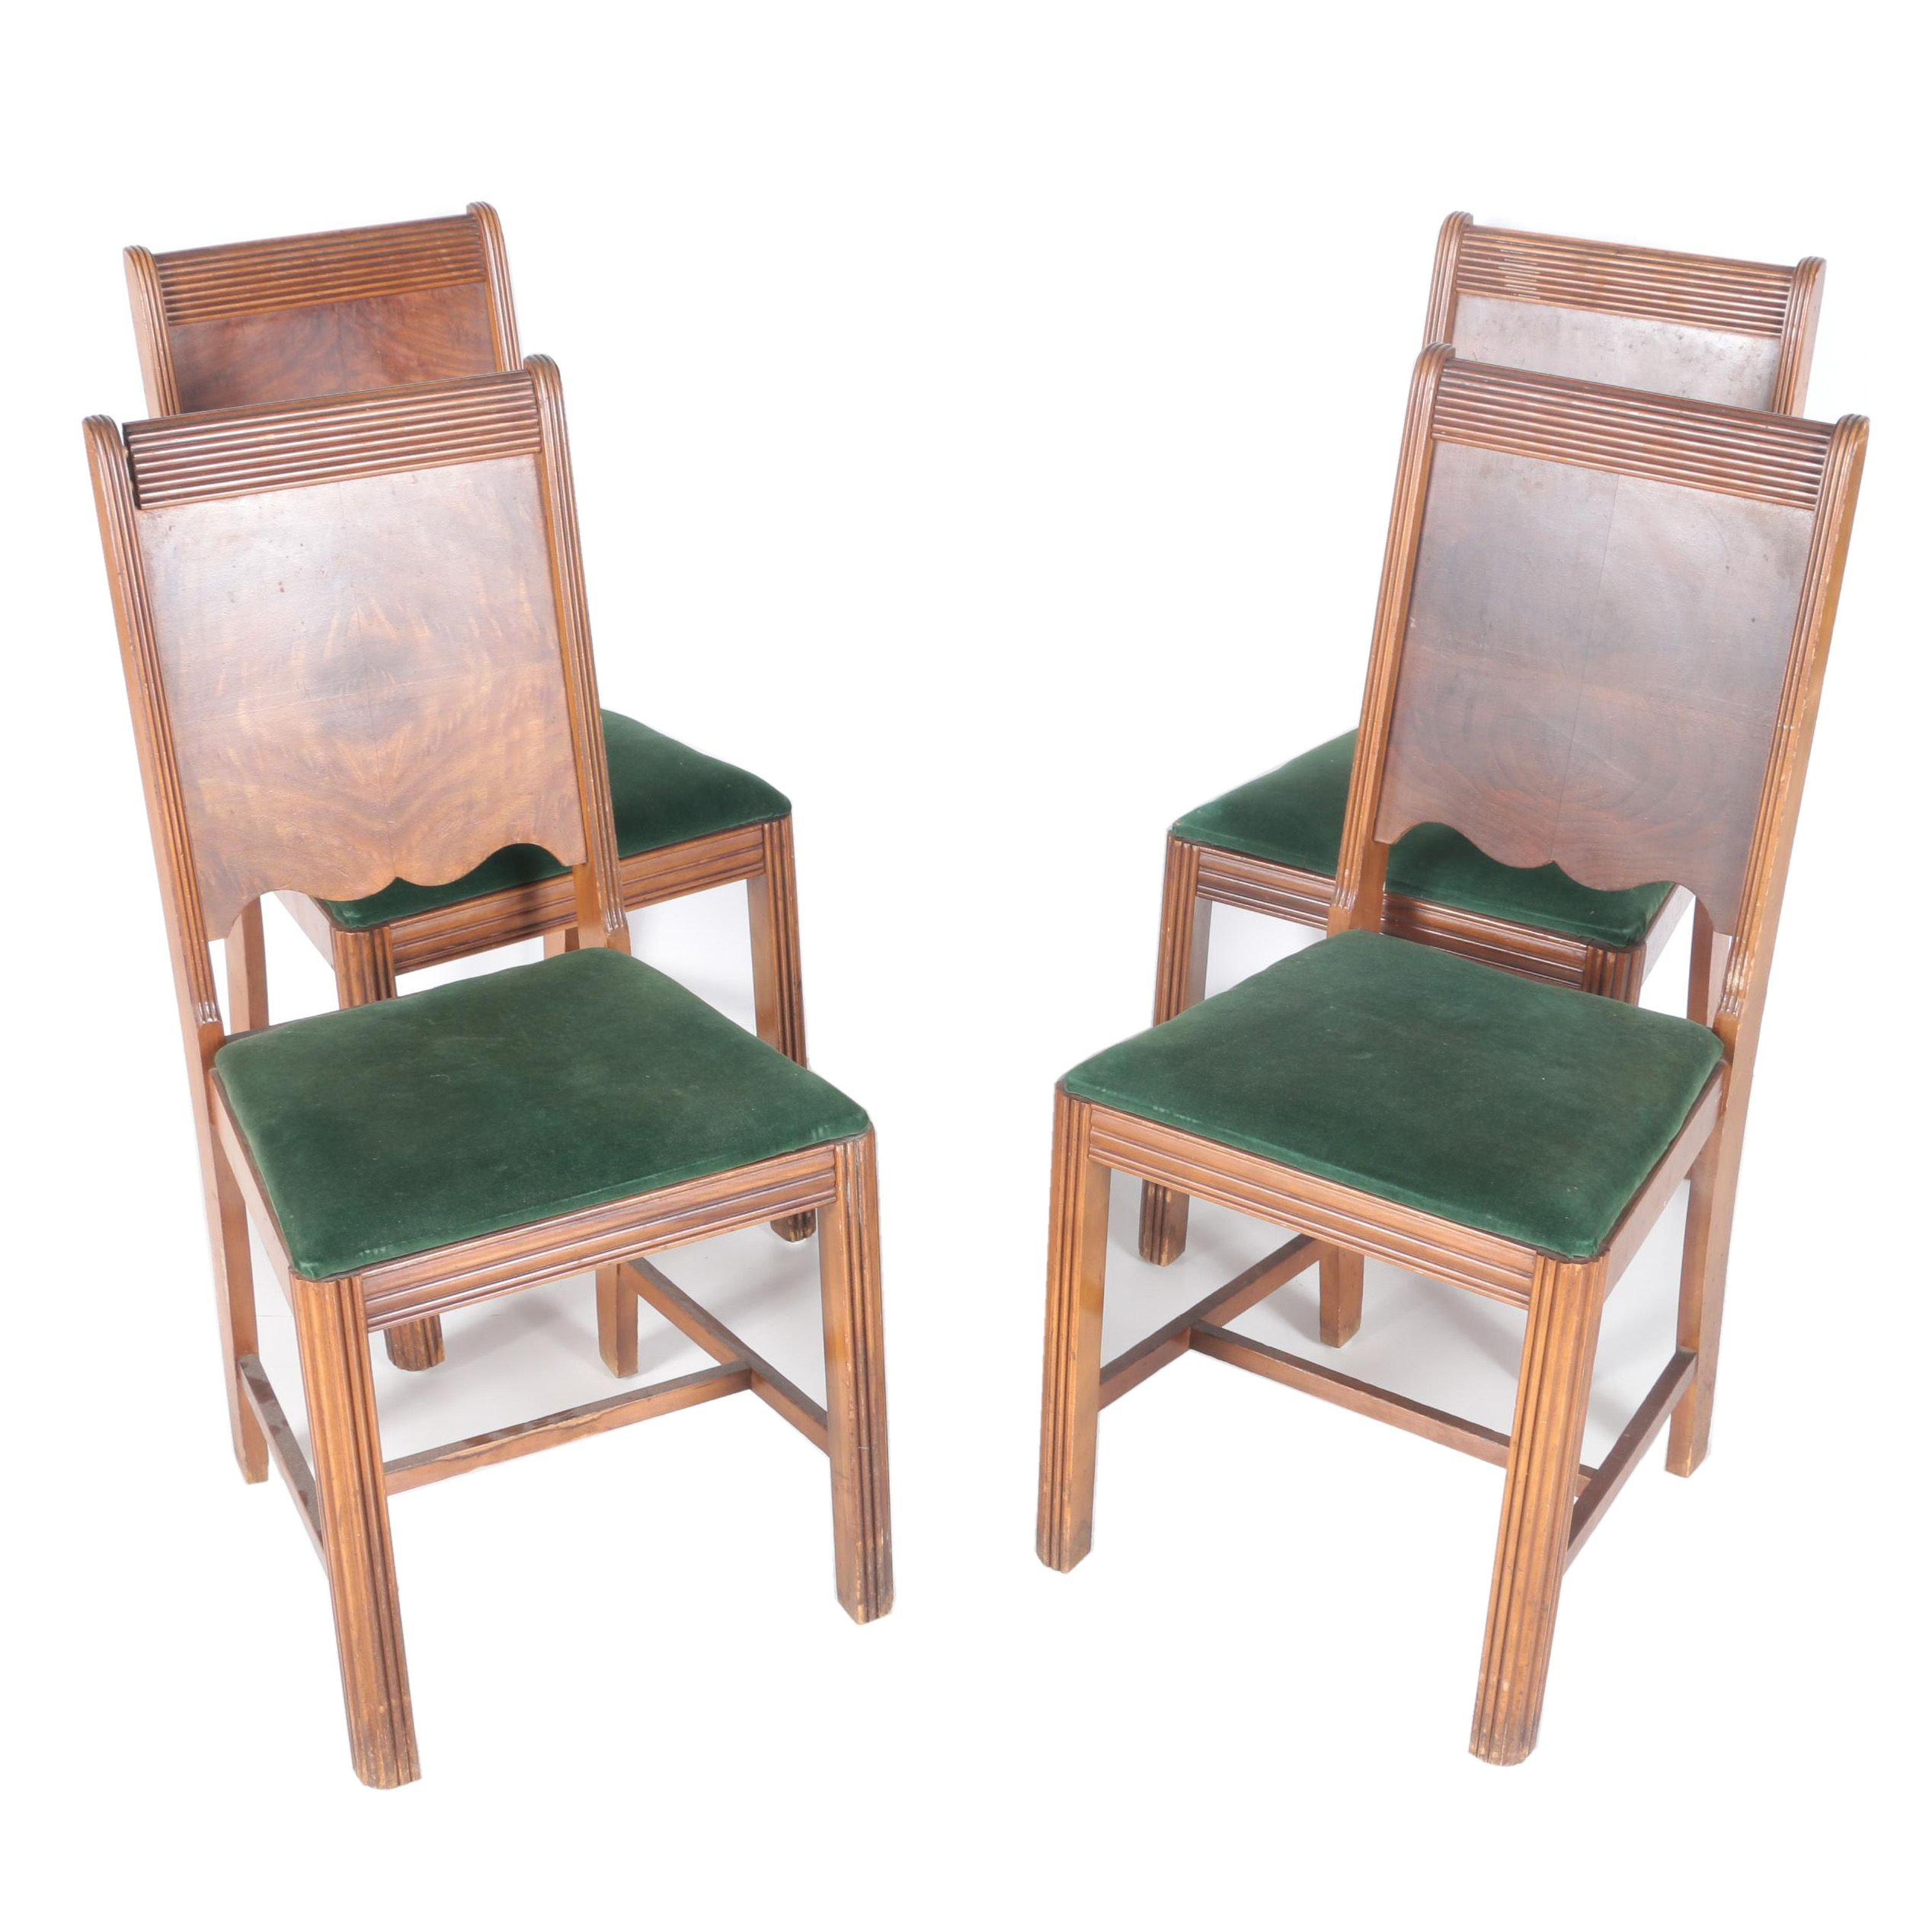 Four Deco-Regency Style Walnut Veneered Dining Chairs